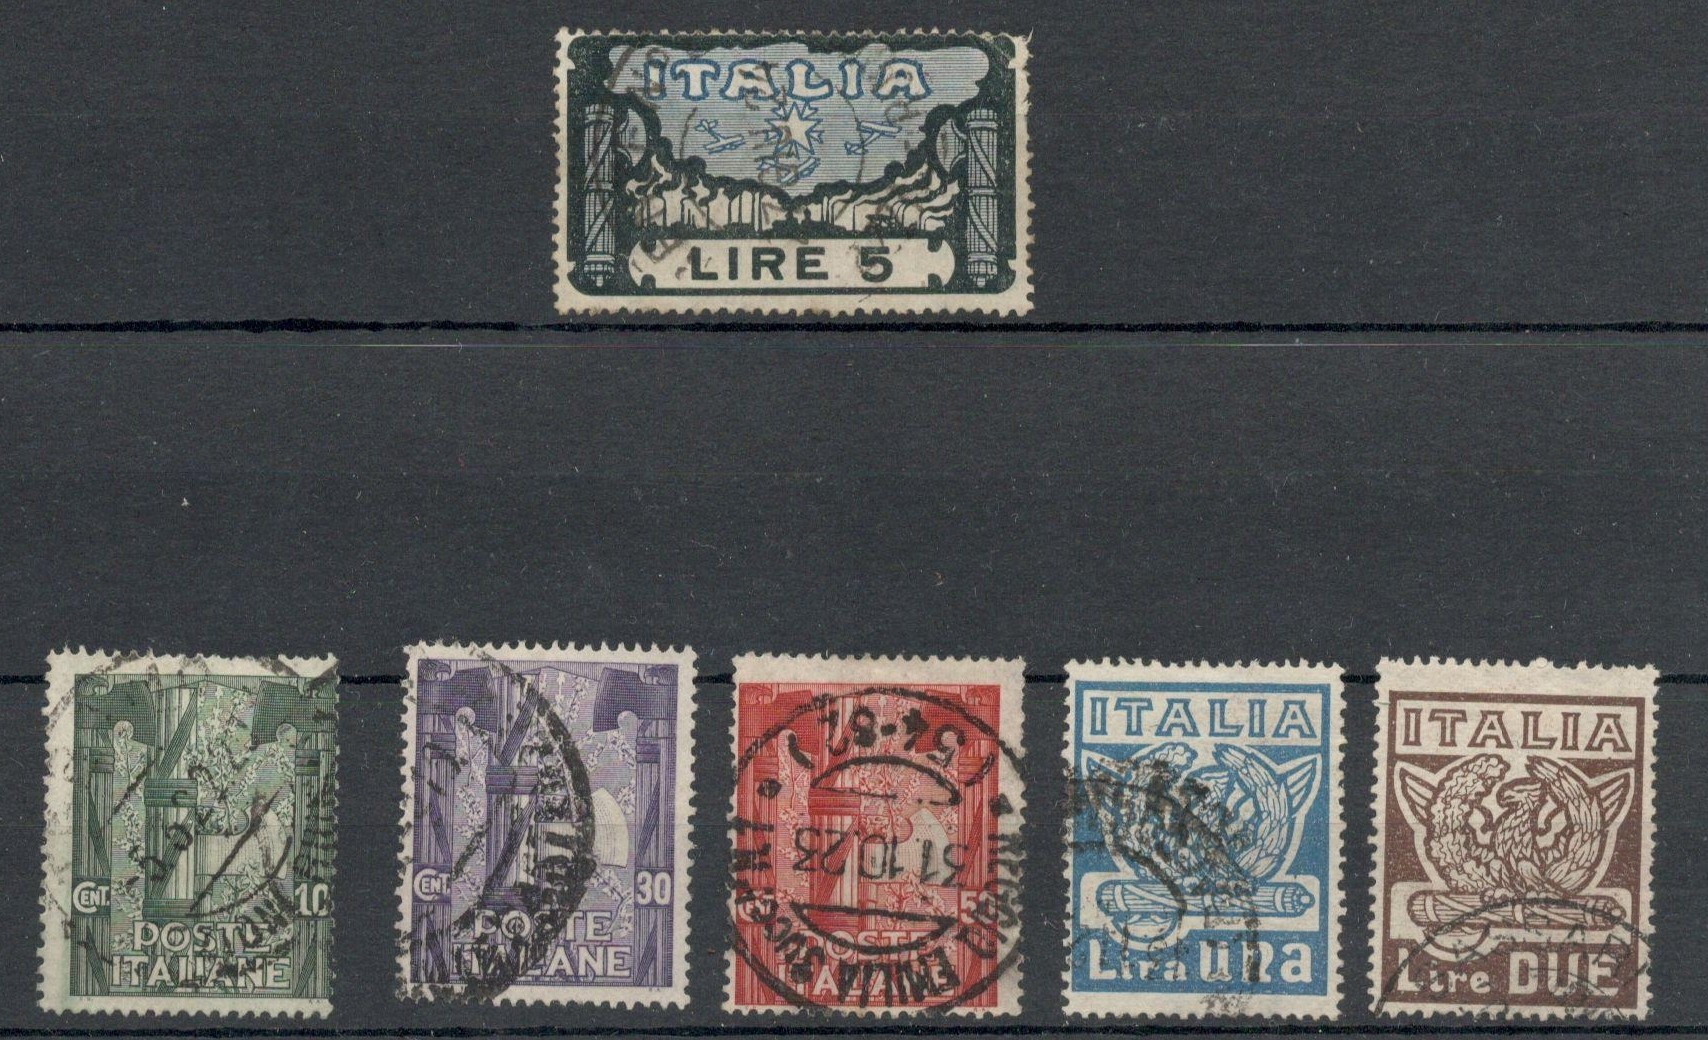 Lot 15 - ITALY 1923 ANNIVERSARY OF THE MARCH OF THE FASCIST ON ROME - USED